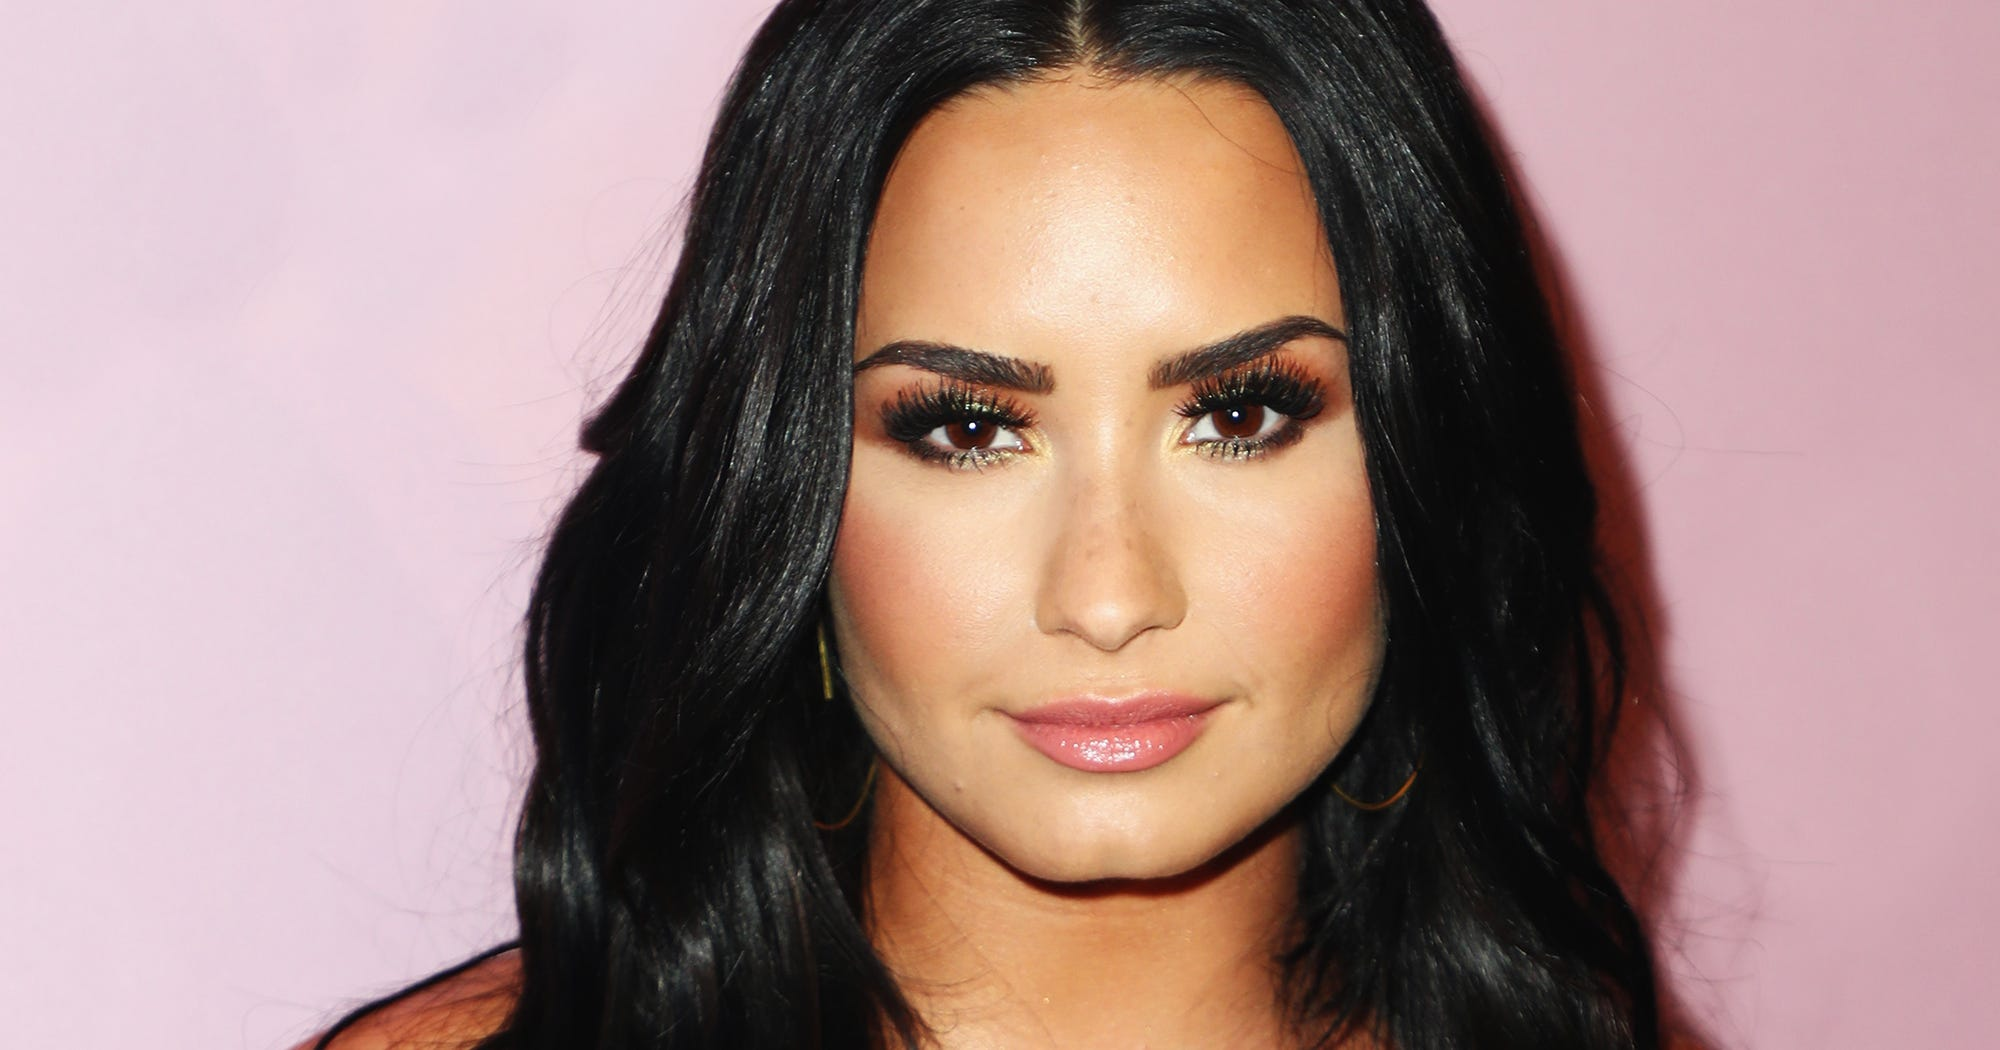 demi lovato essay Demi lovato's surprising ascendancy charts a new course for millennial  an  essay on the wage gap between men and women in hollywood.